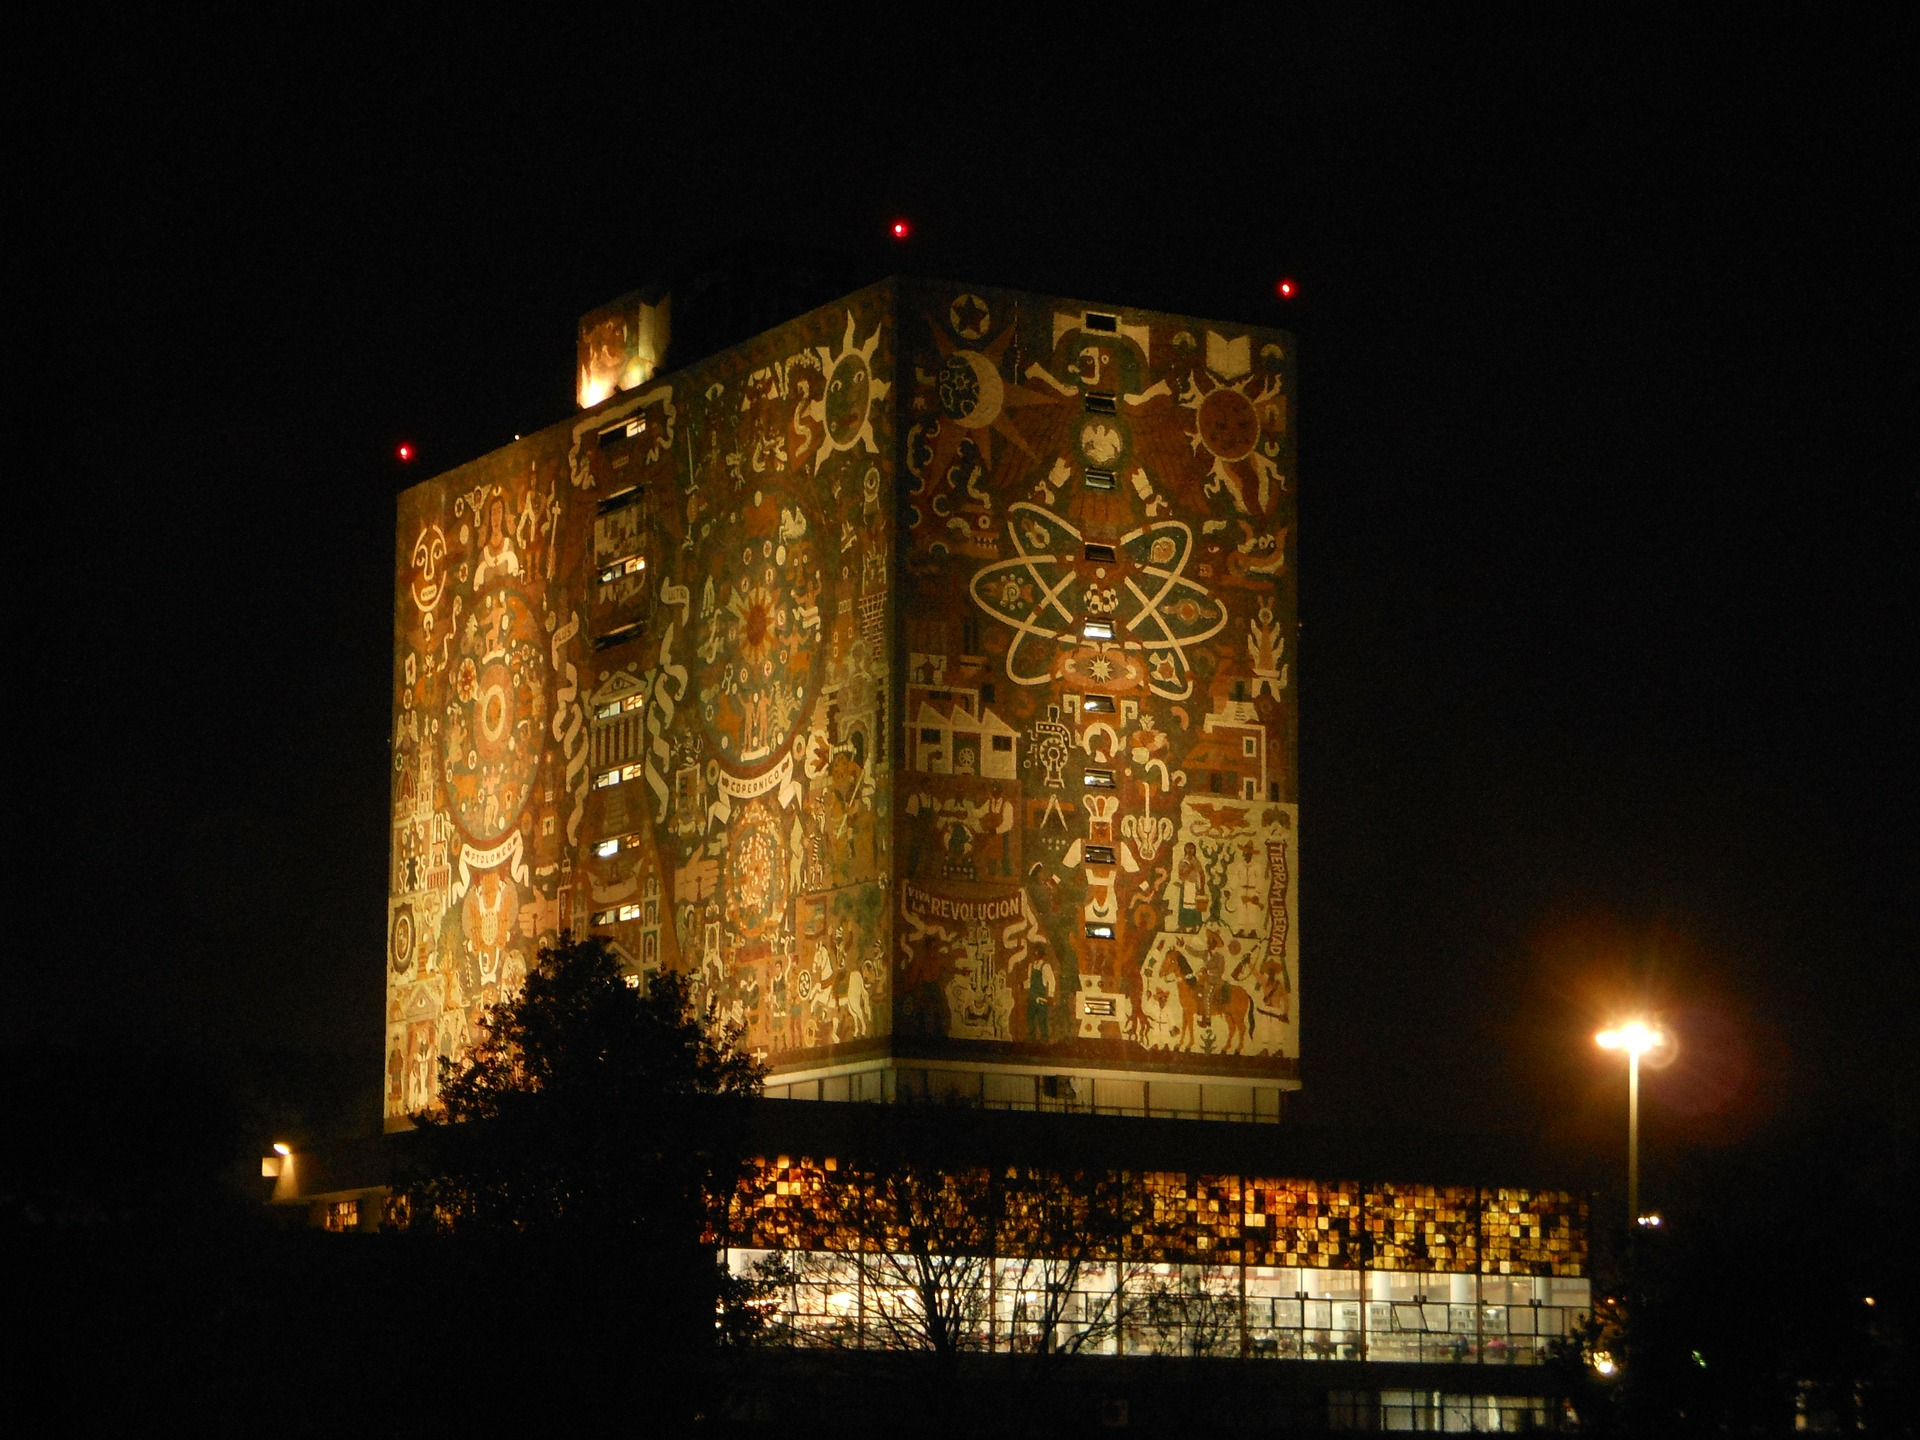 Mexico, night, carvings